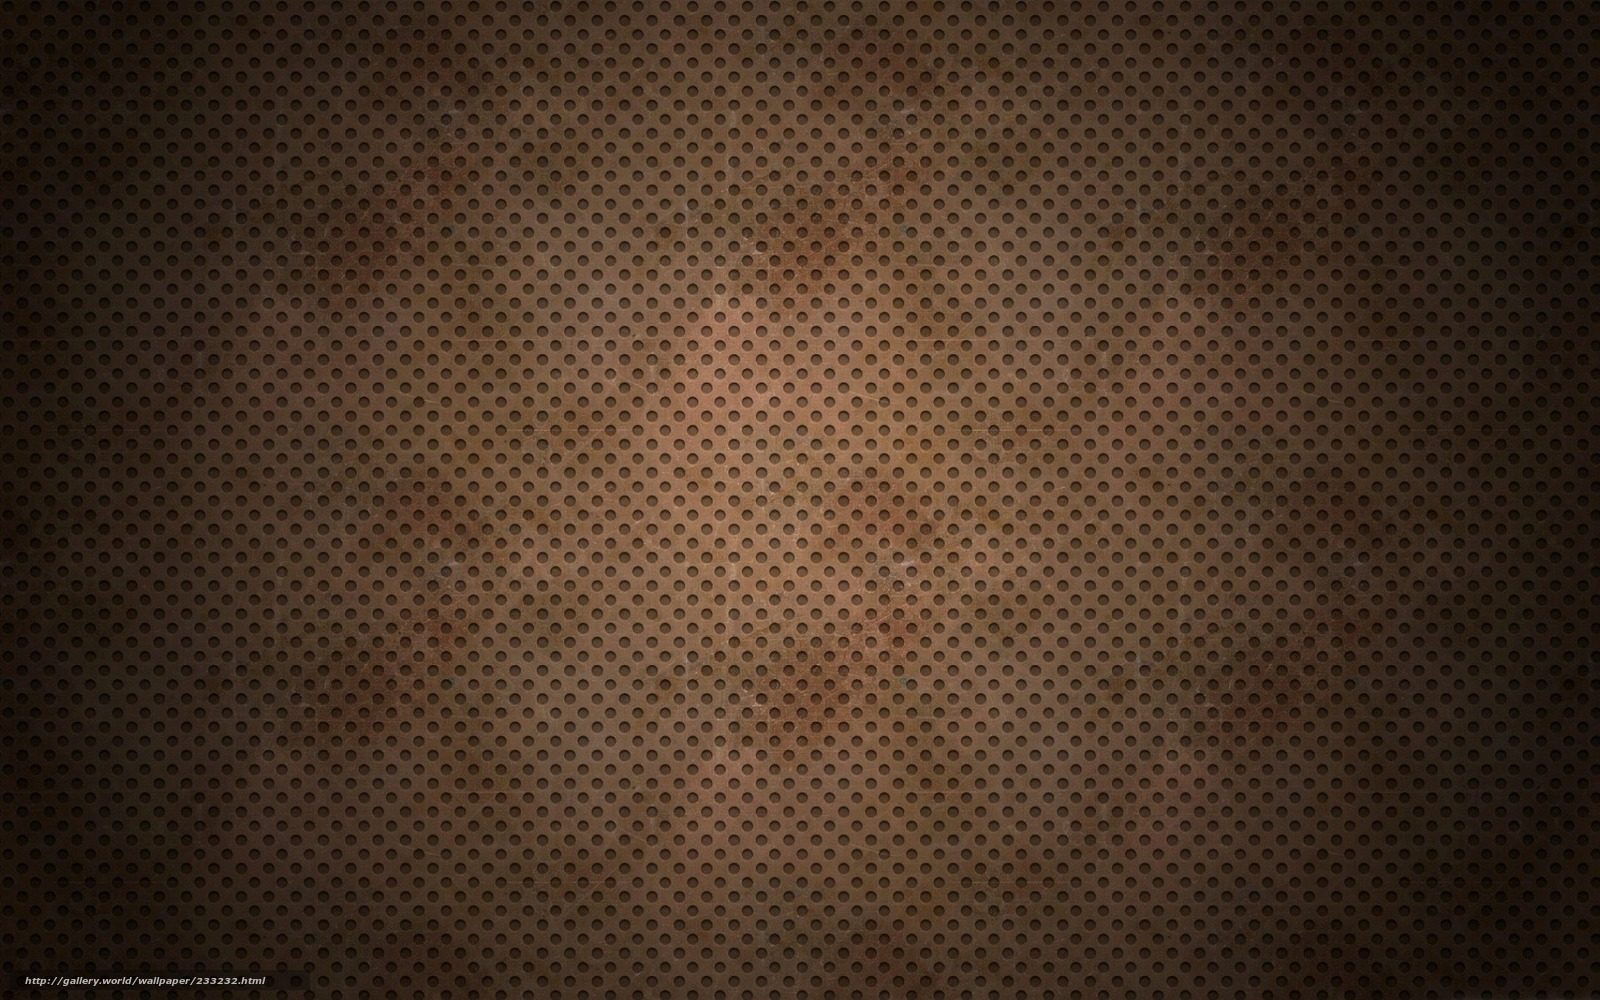 Marron Wallpaper Color Cafe Fondos Fondo Picture Pictures Vintage Camera Backgrounds